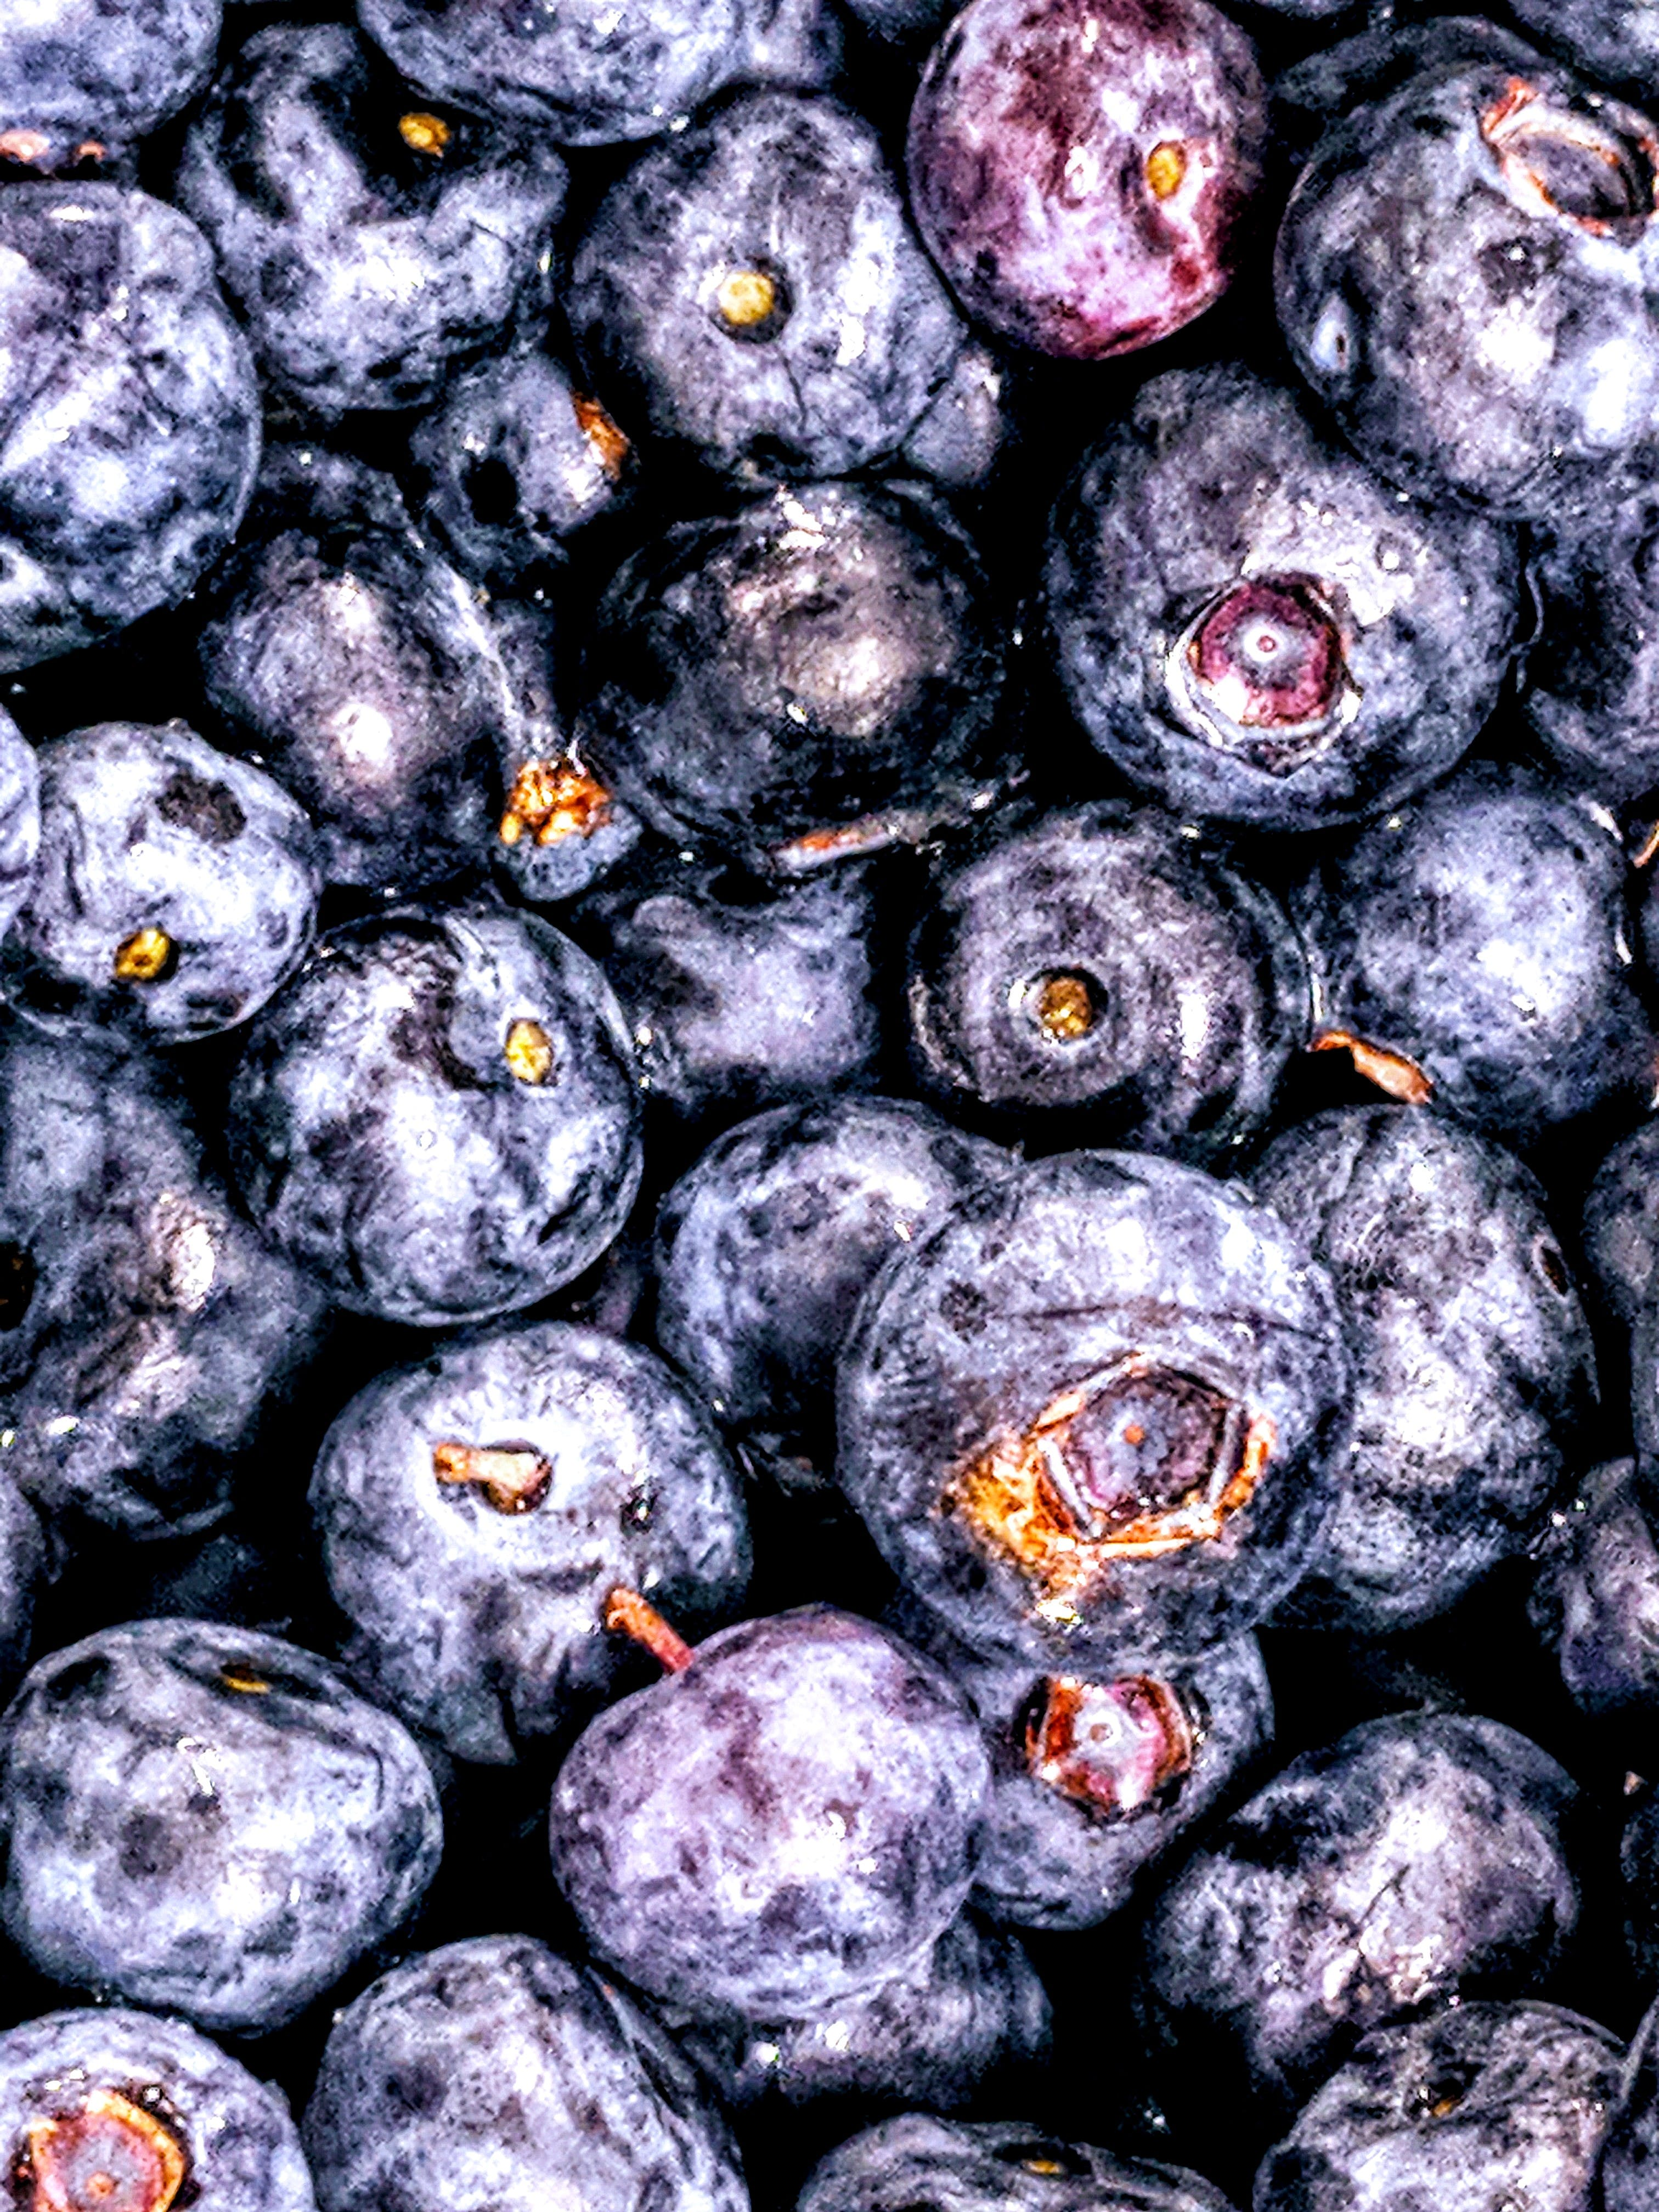 Flat Lay Photography of Bunch of Blueberries